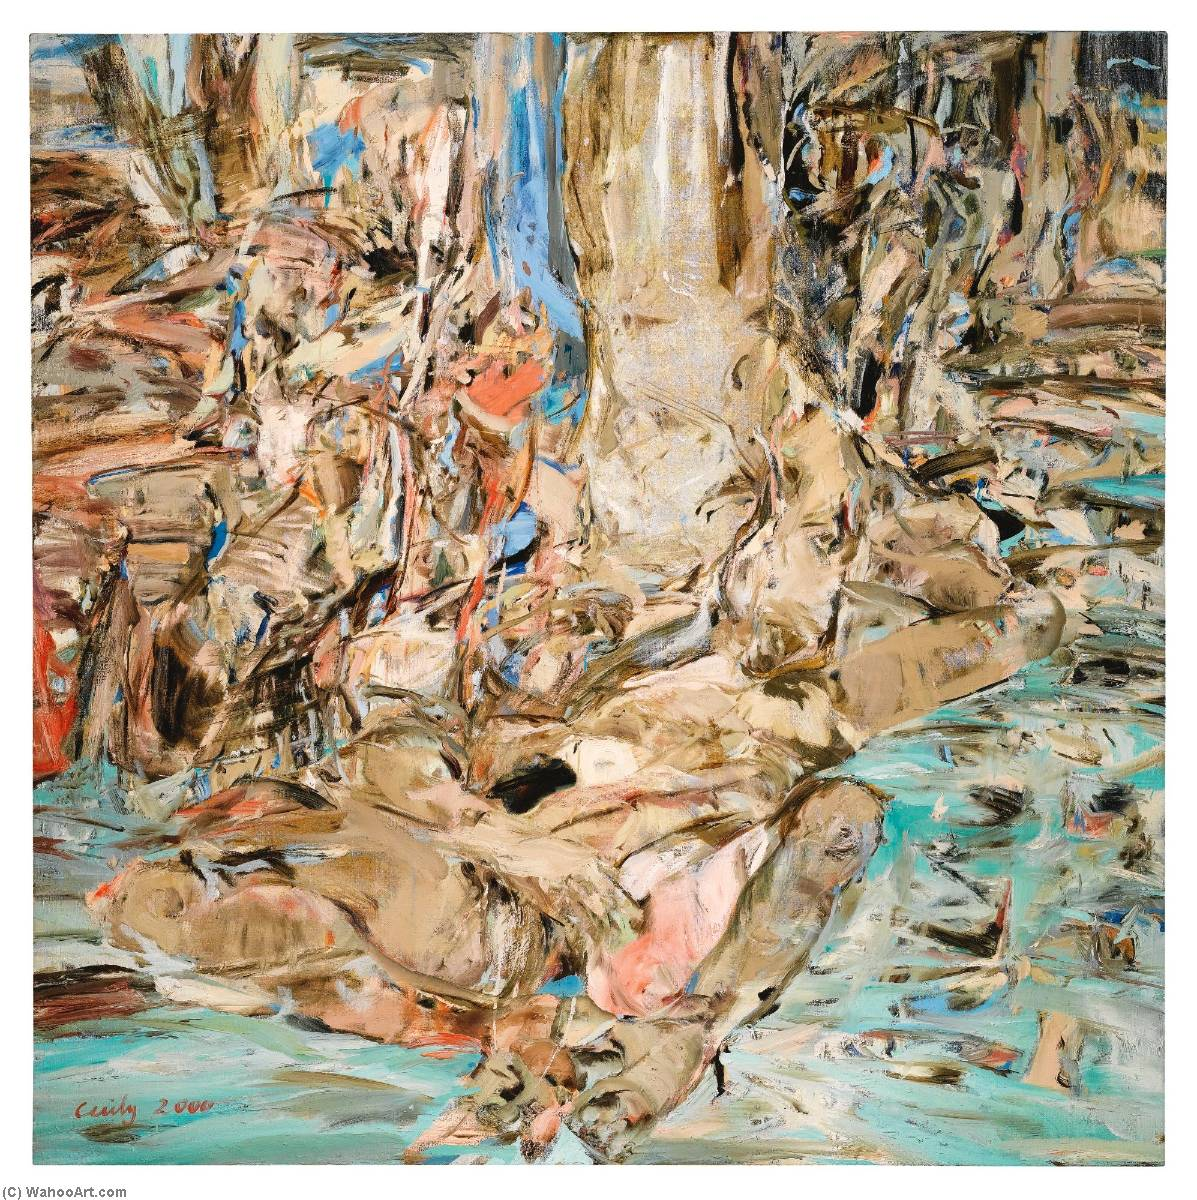 Summerstorm, 油画 通过 Cecily Brown